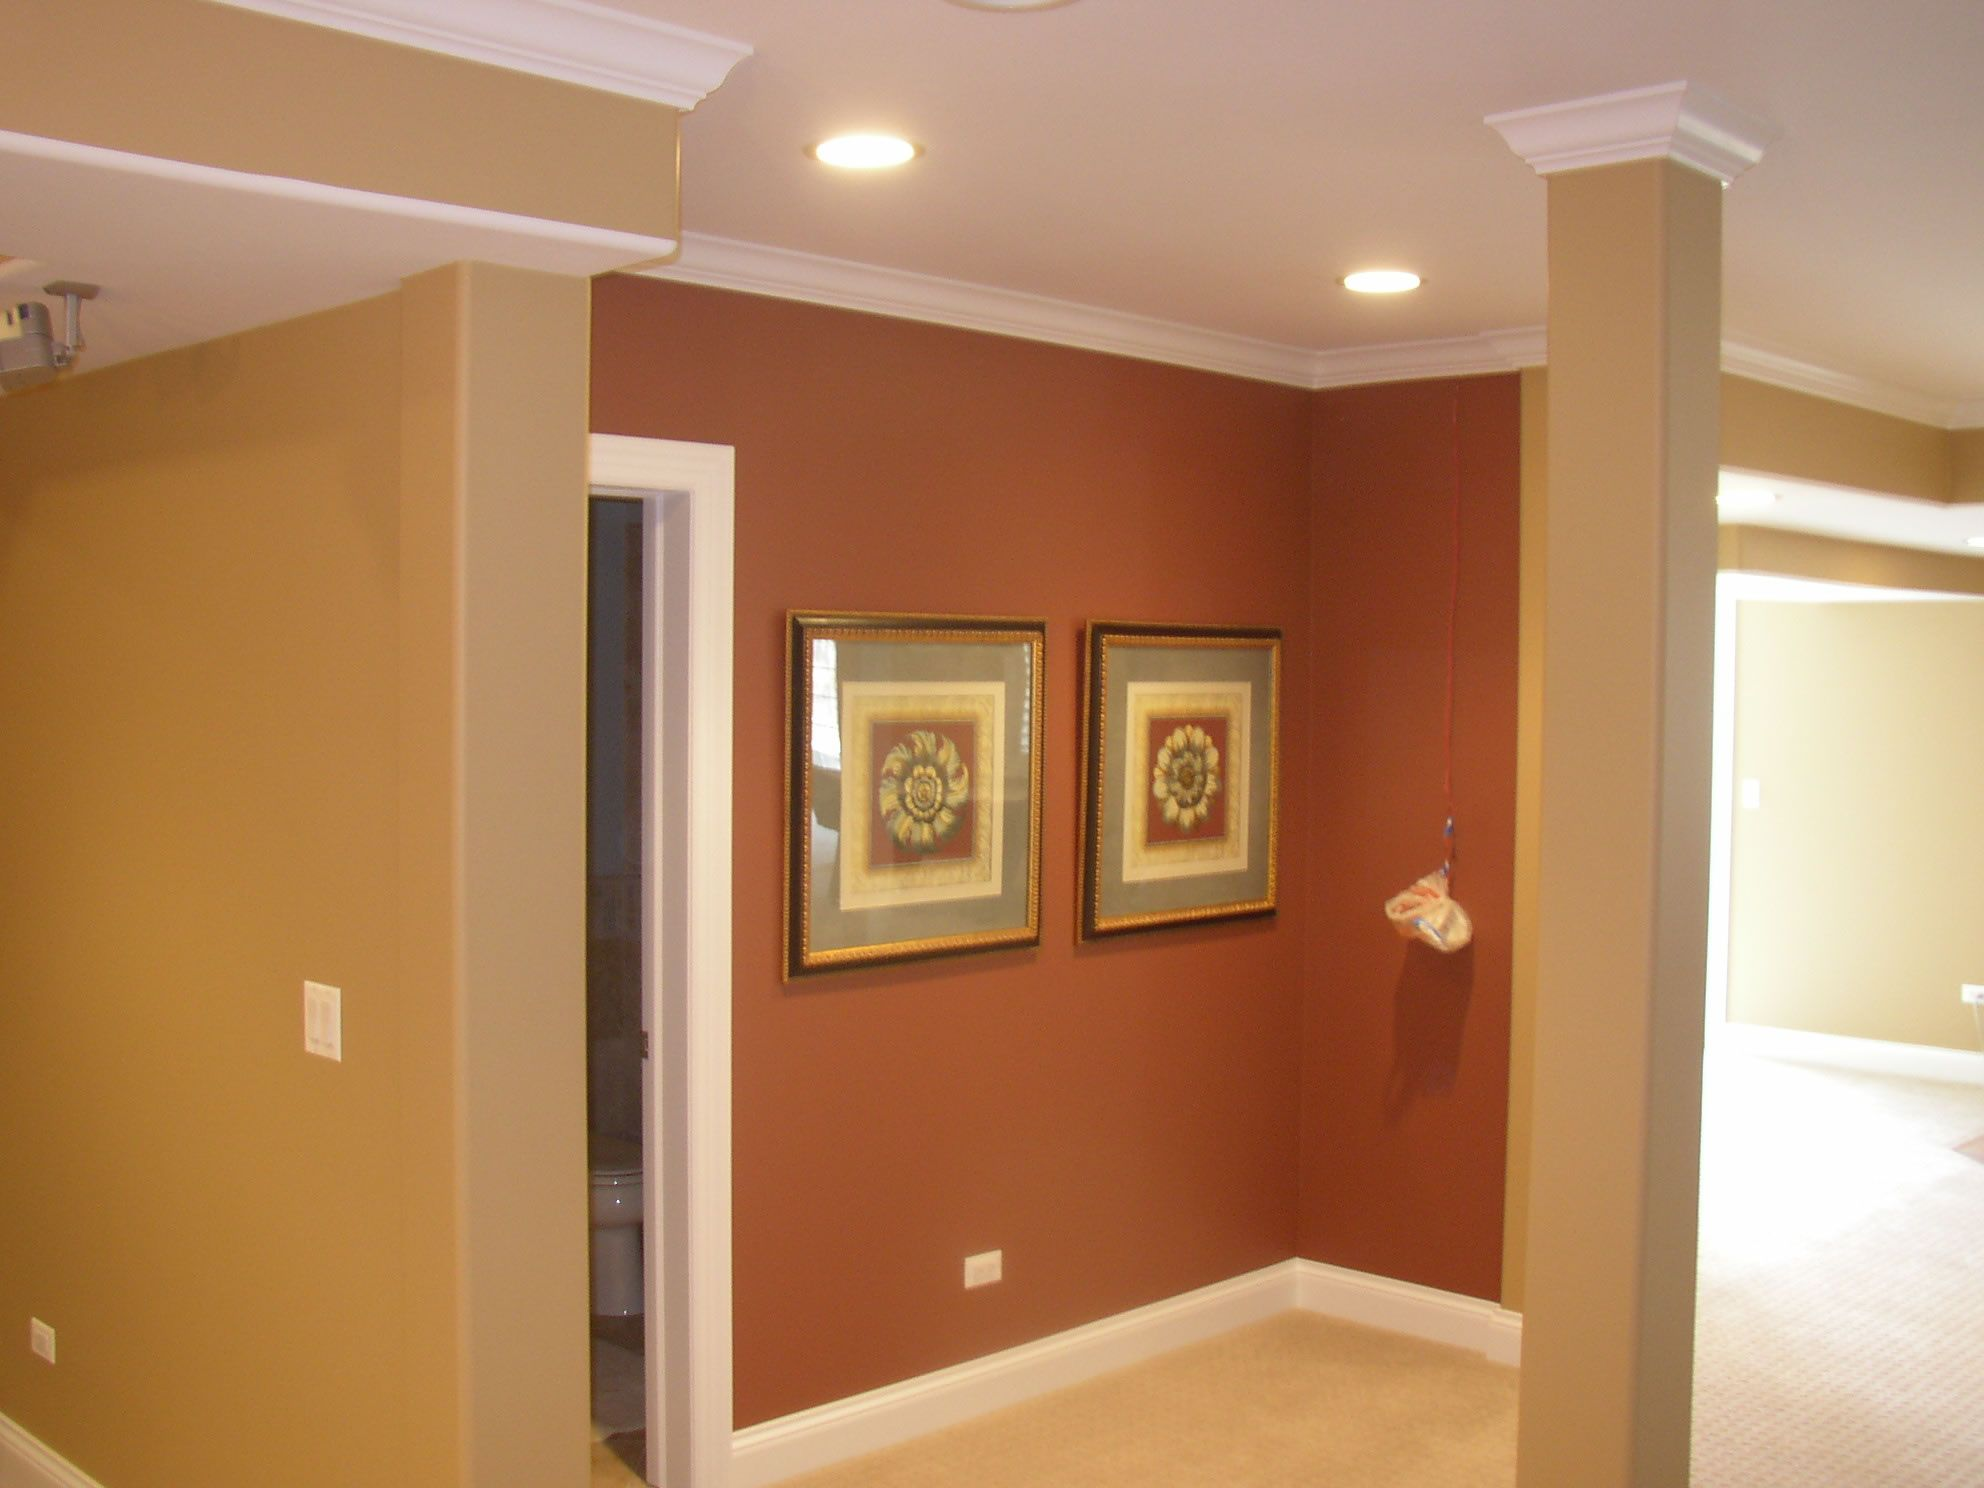 Interior painting ideas color schemes - Interior Paint Colors To Request A Free Estimate For Your Interior Painting